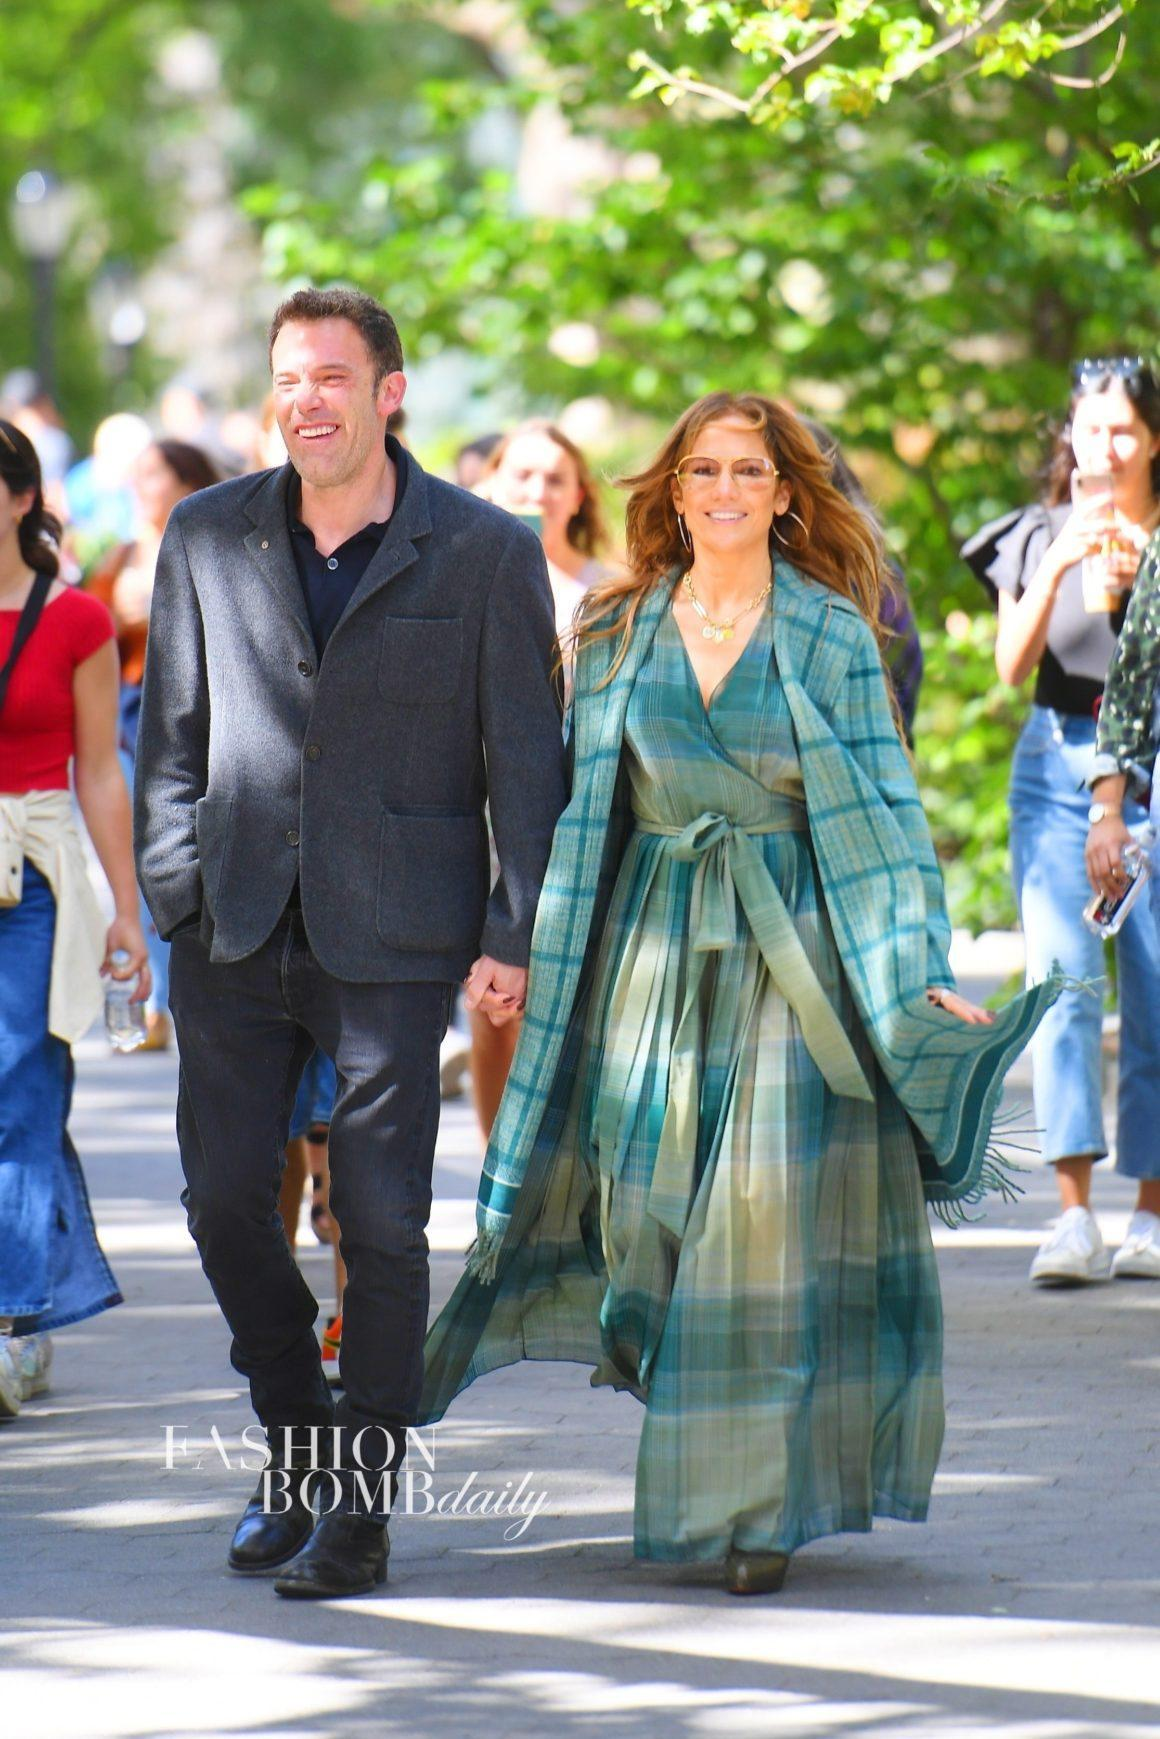 JLo and Ben Affleck Enjoy PDA with Jennifer Lopez in Green Plaid Fringe Fall Dior 2020 Coat and Dress